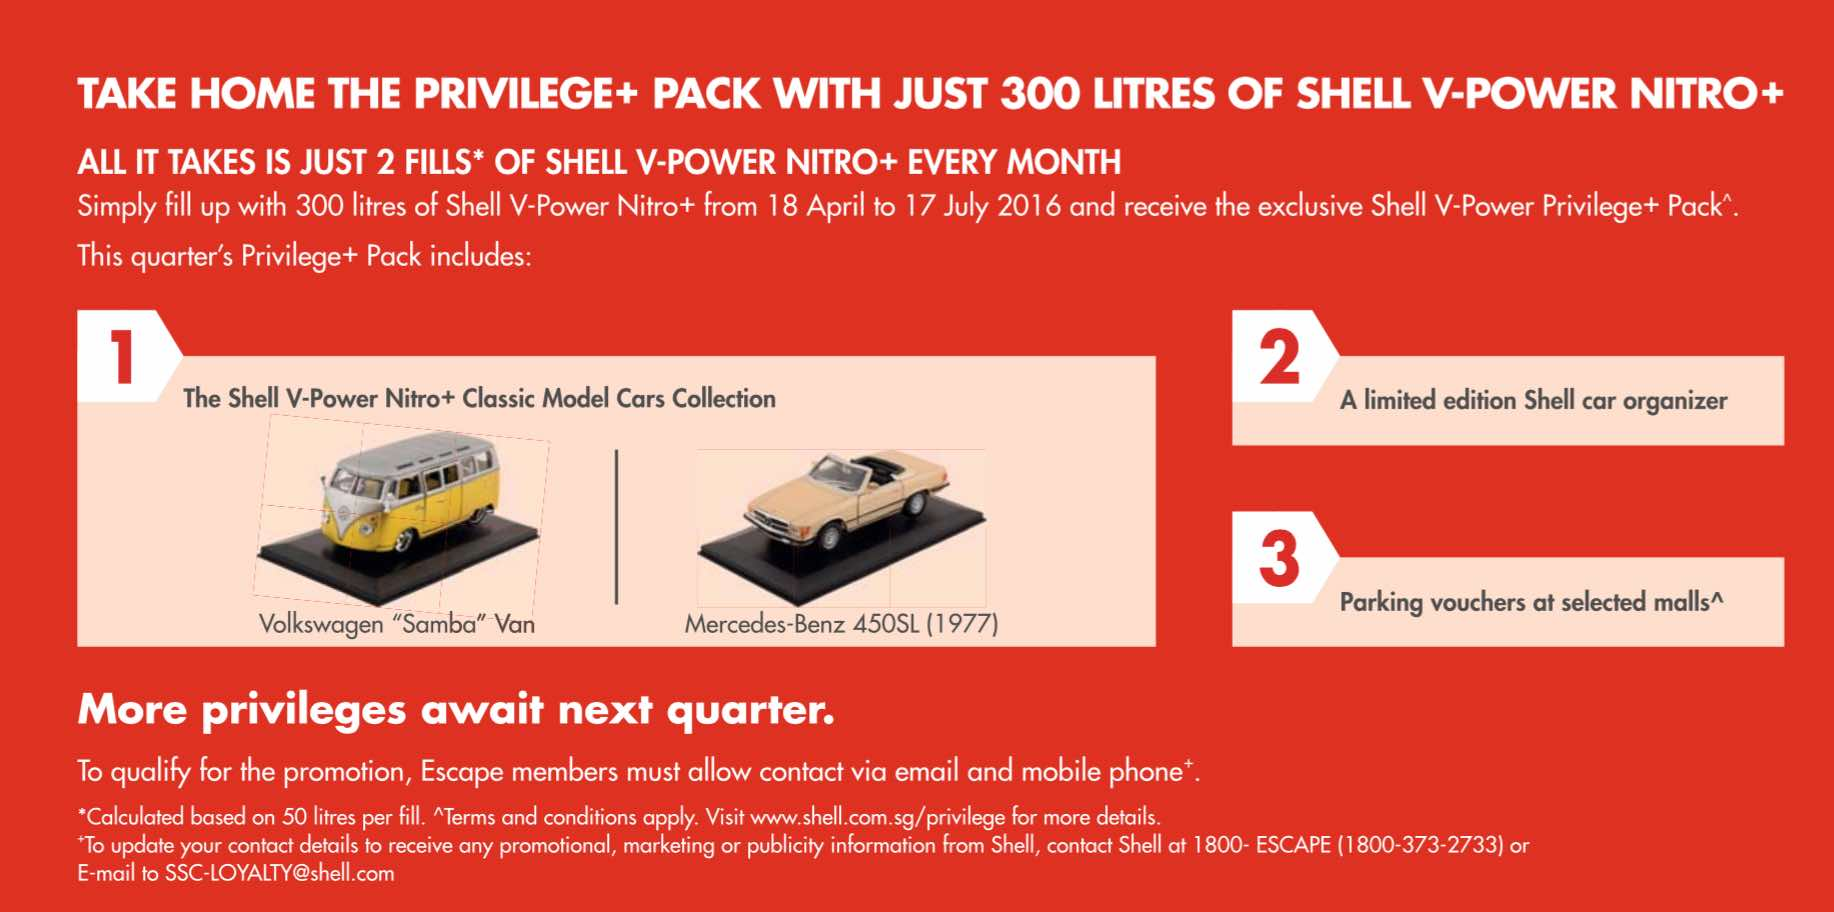 Shell Privilege Pack - AspirantSG